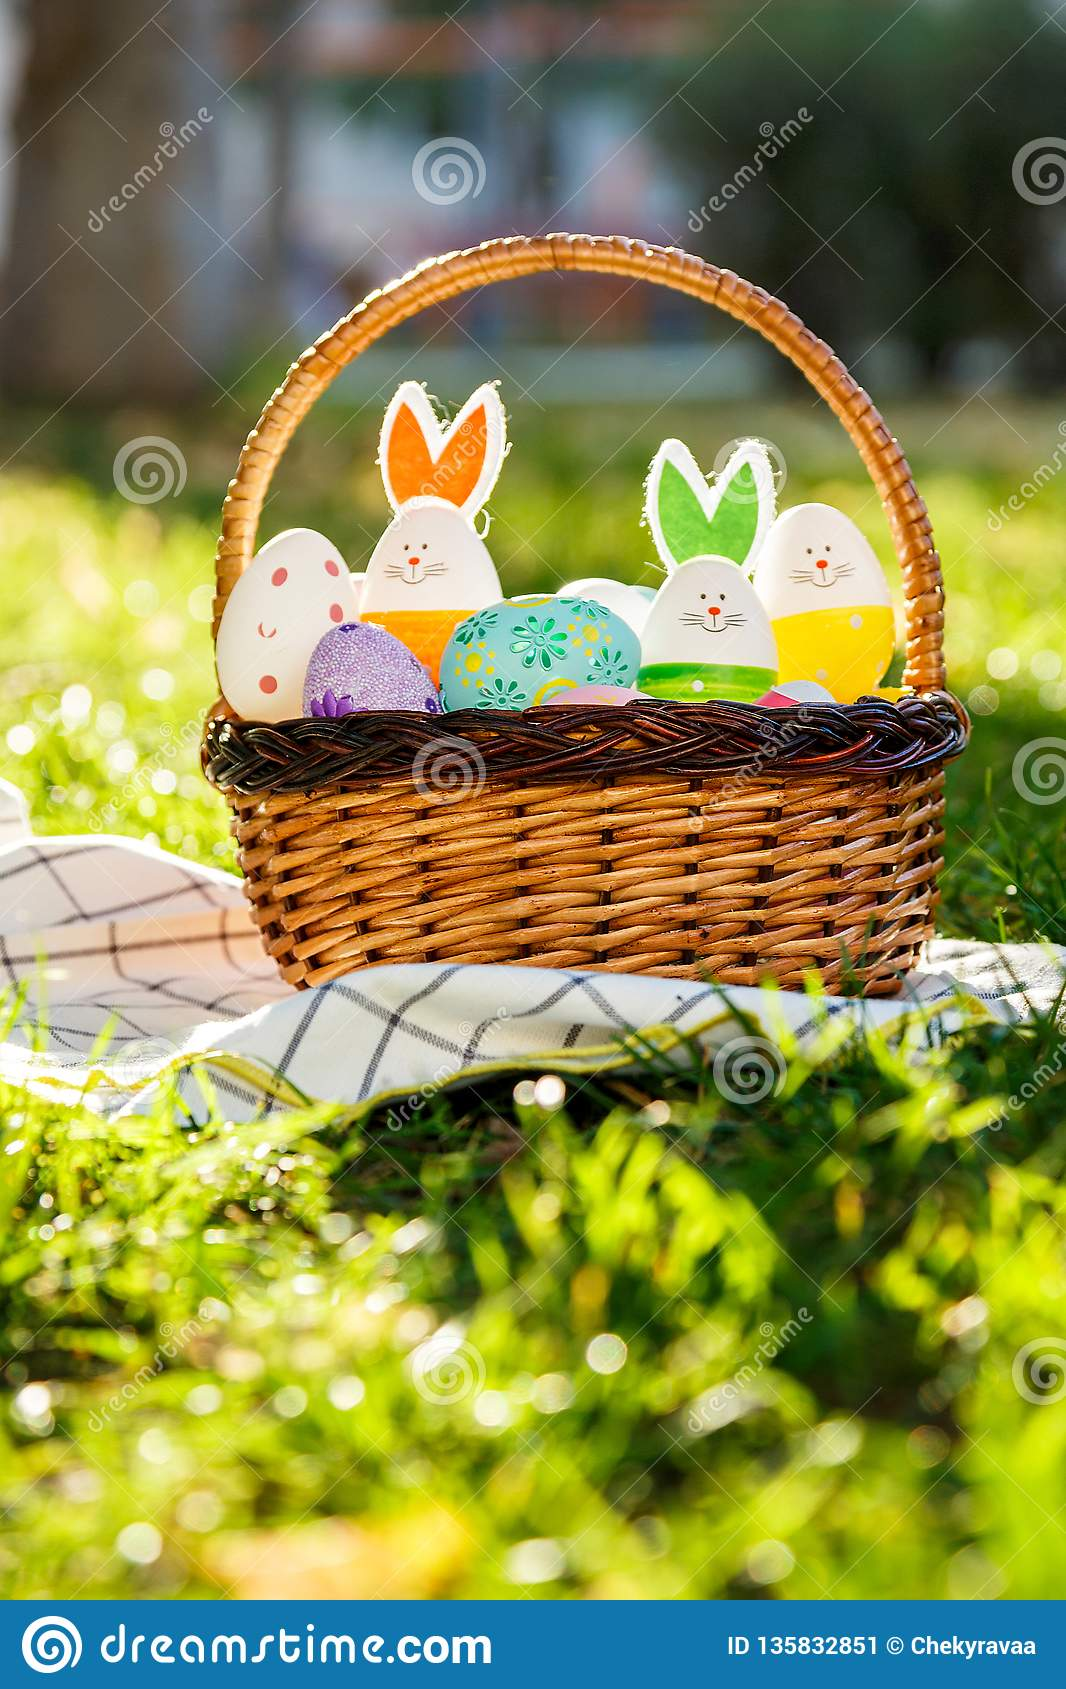 Hand painted Easter eggs and bunny in big rattan basket on green grass on white towel. Traditional decoration for Easter